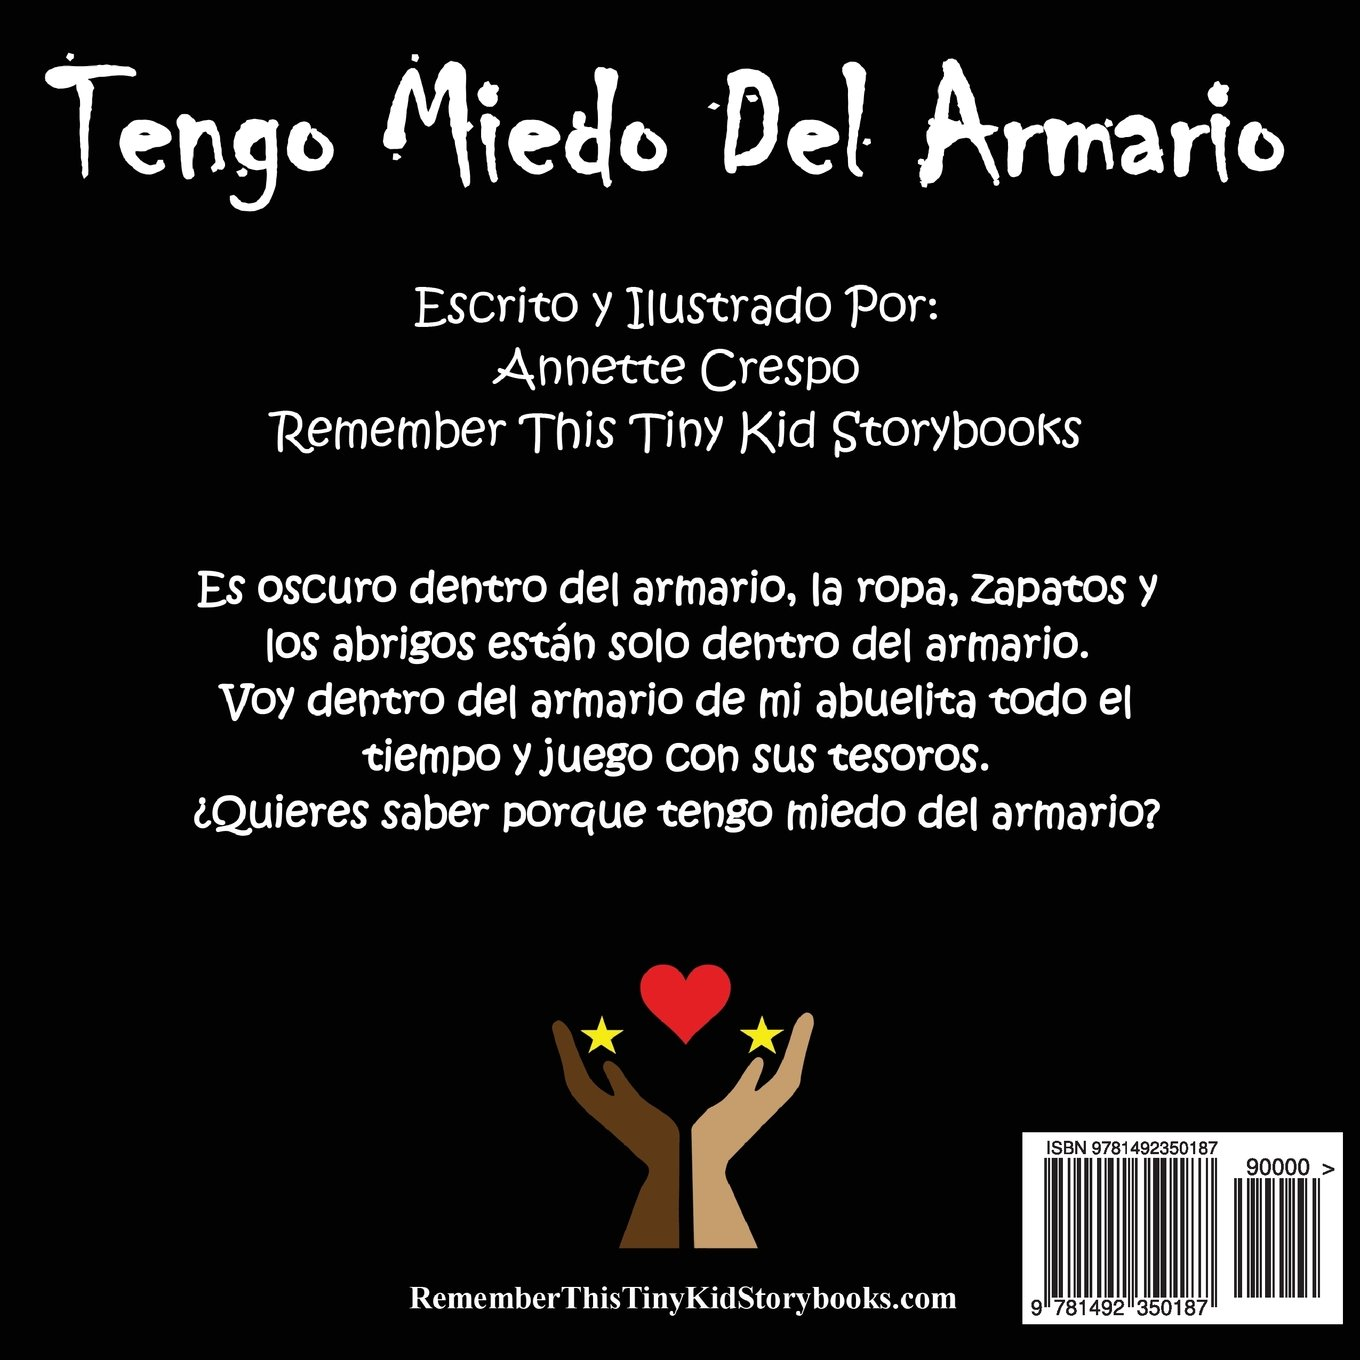 Tengo Miedo Del Armario (Spanish Edition): Remember This Tiny Kid Storybooks, Annette Crespo: 9781492350187: Amazon.com: Books